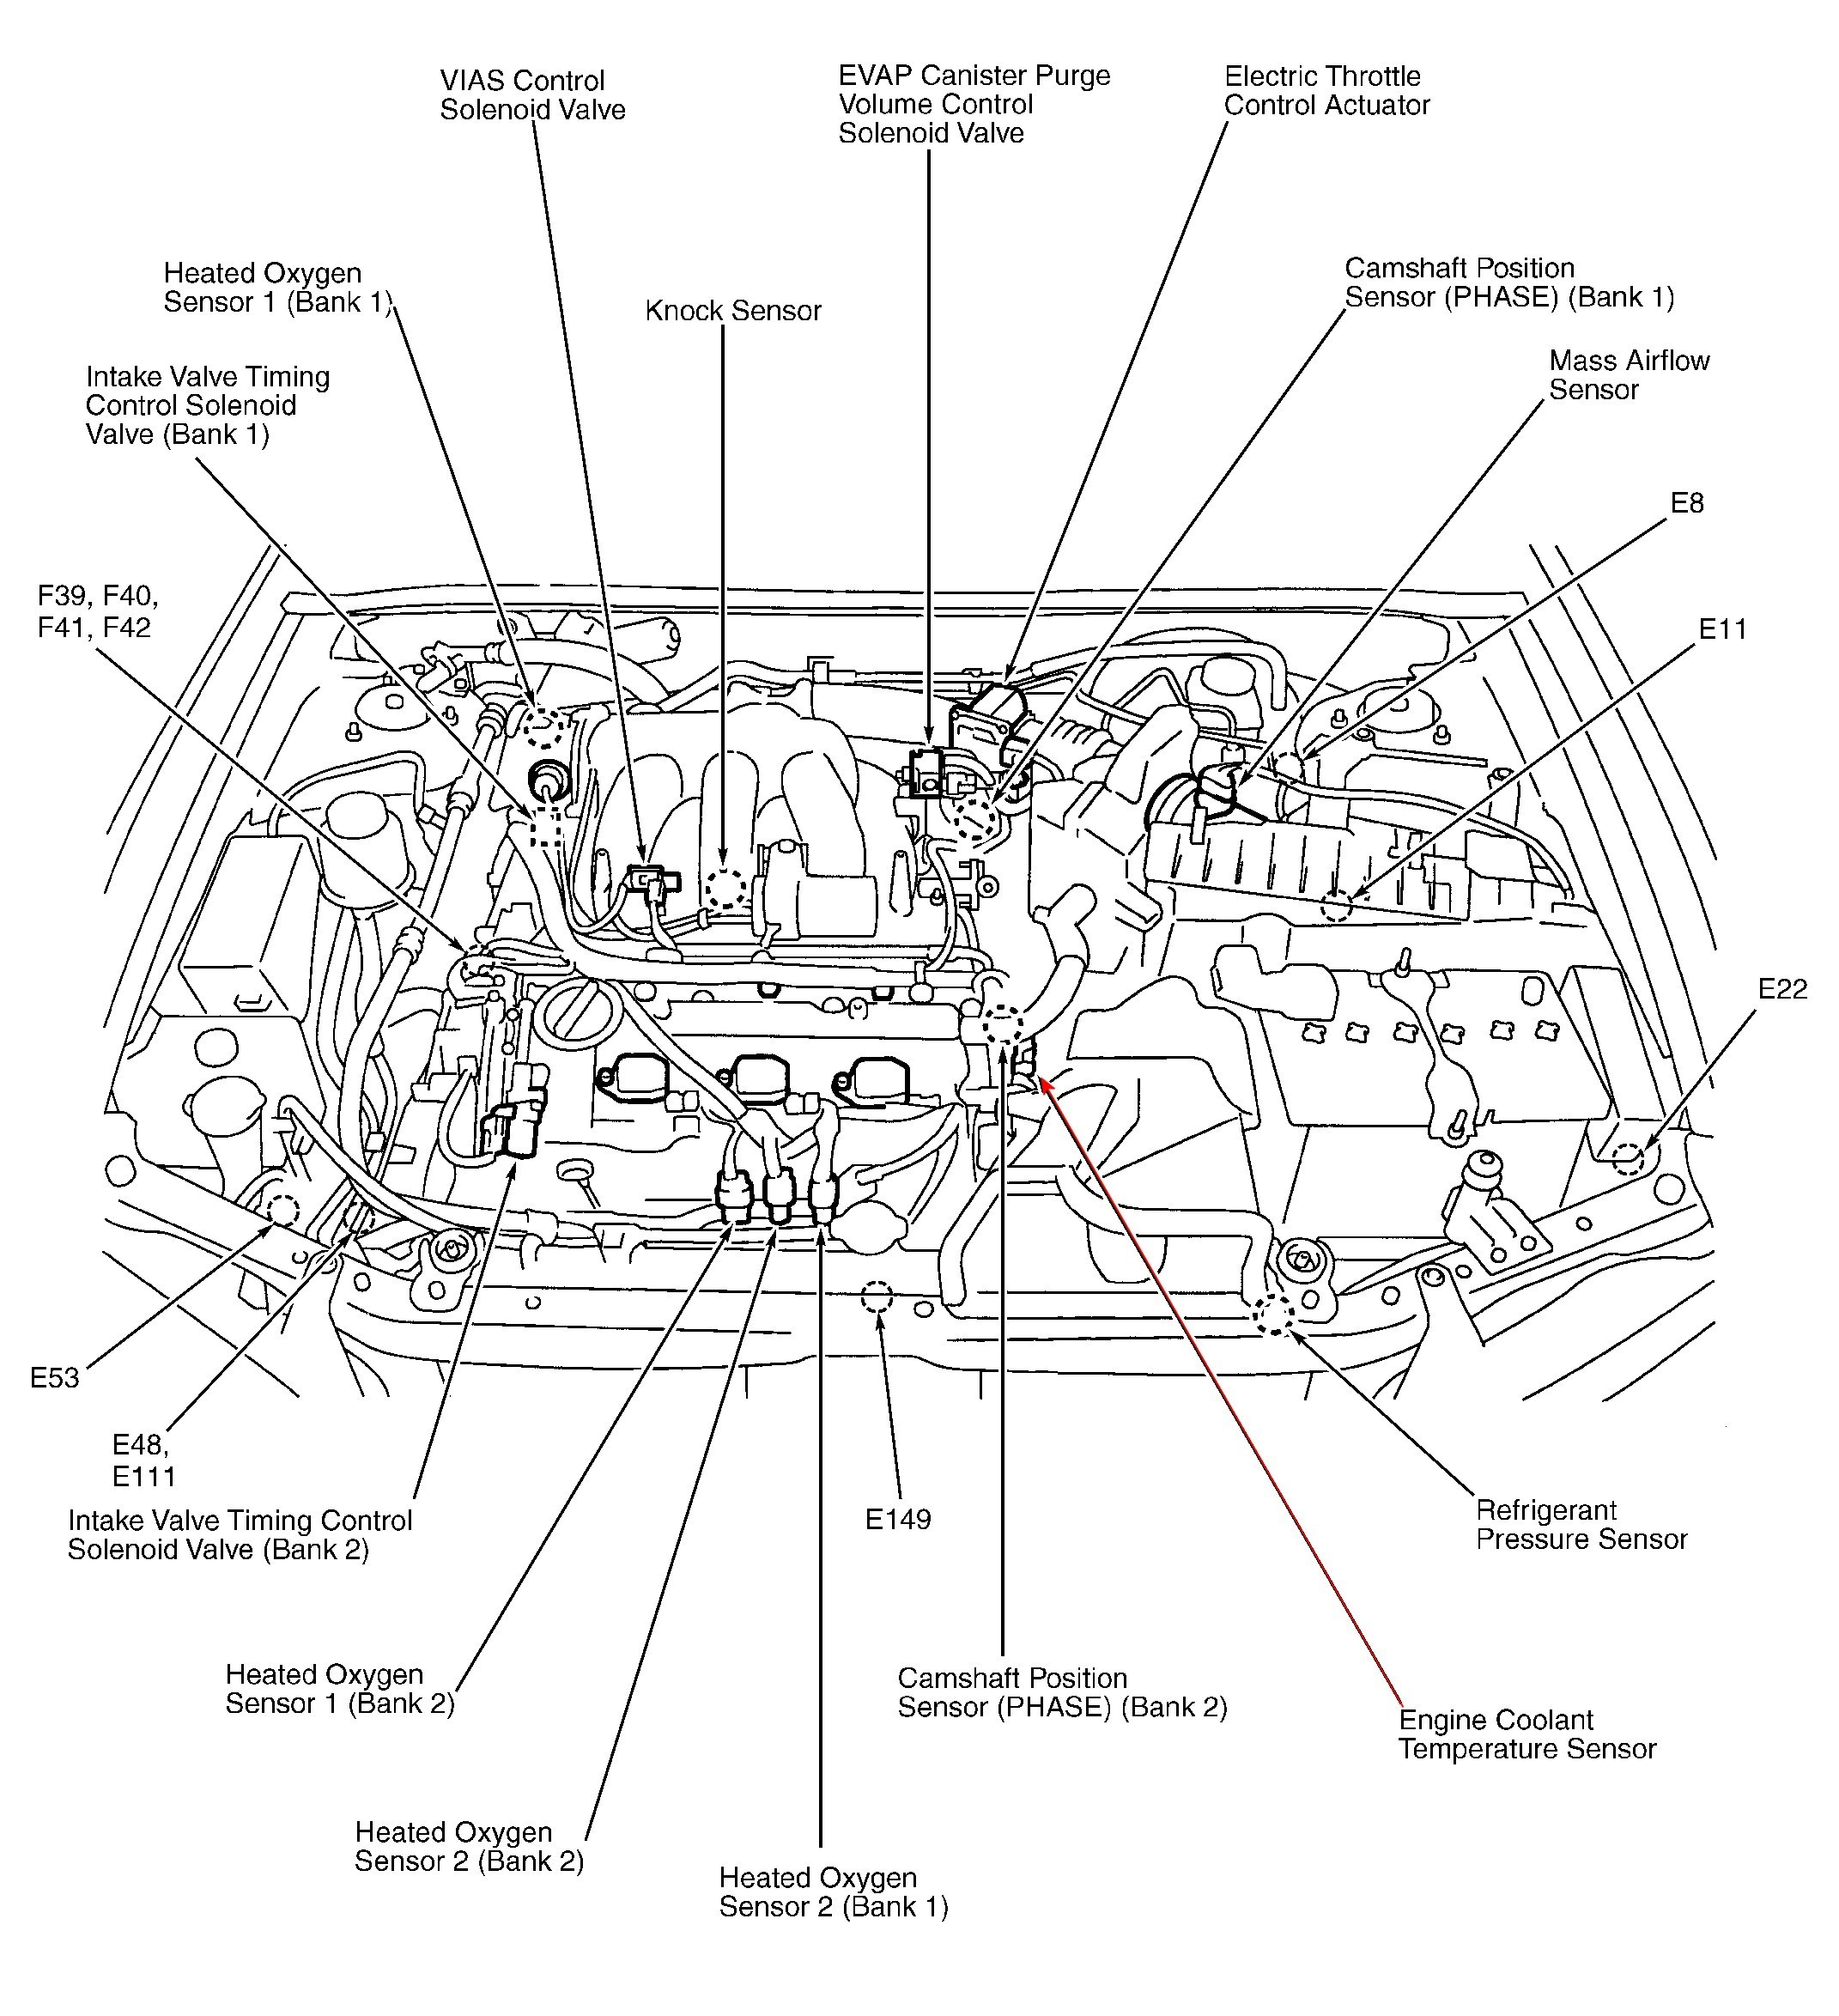 Under The Car Hood Diagram Car Parts Labeled Diagram Car Parts Diagram Under Hood Car Diagram Of Under The Car Hood Diagram on 2004 Dodge Ram Throttle Body